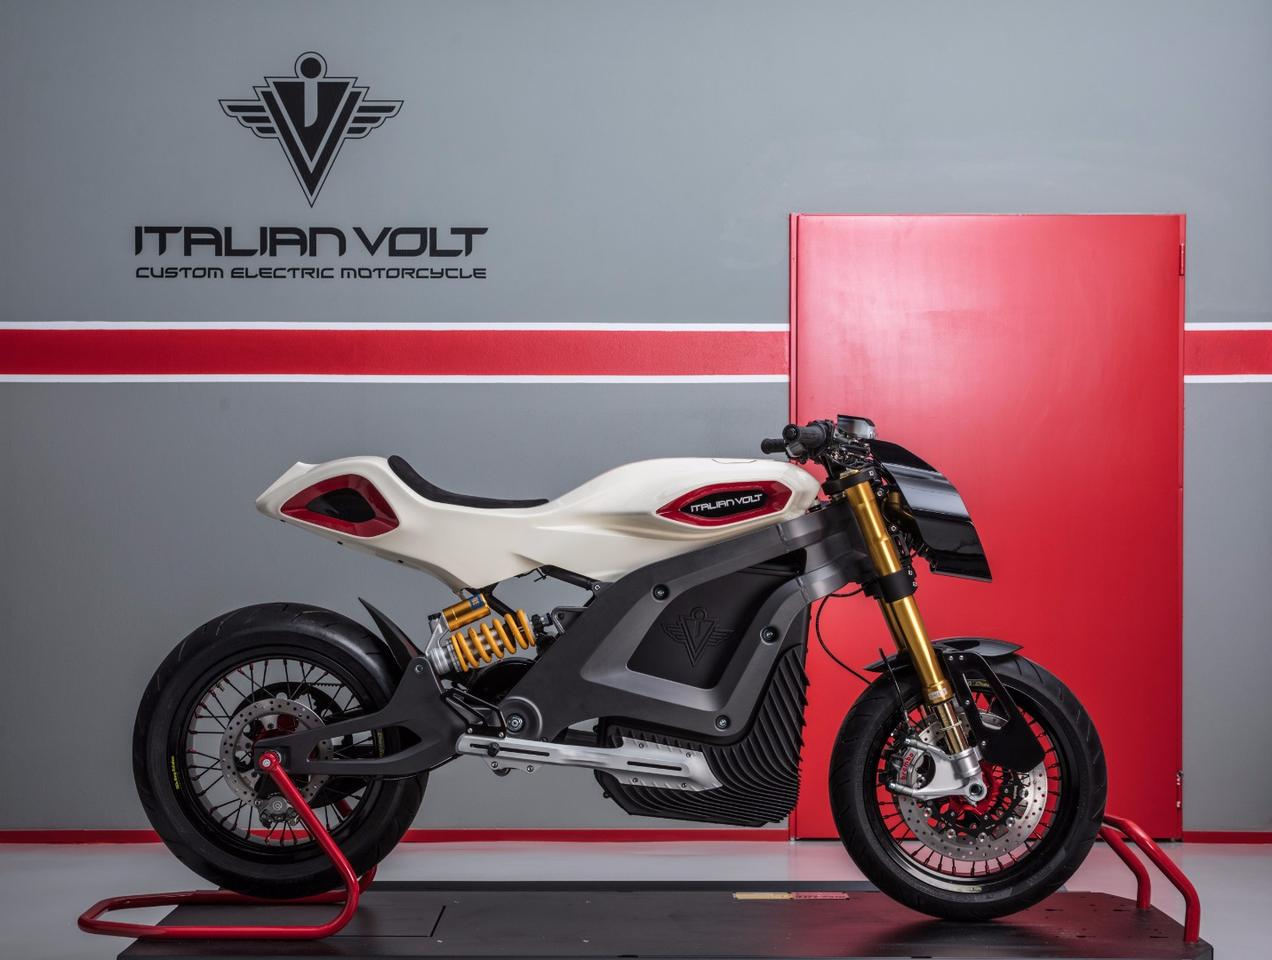 The Italian Volt Lacama is a custom electric motorcycle destined for riders that can afford to stand out